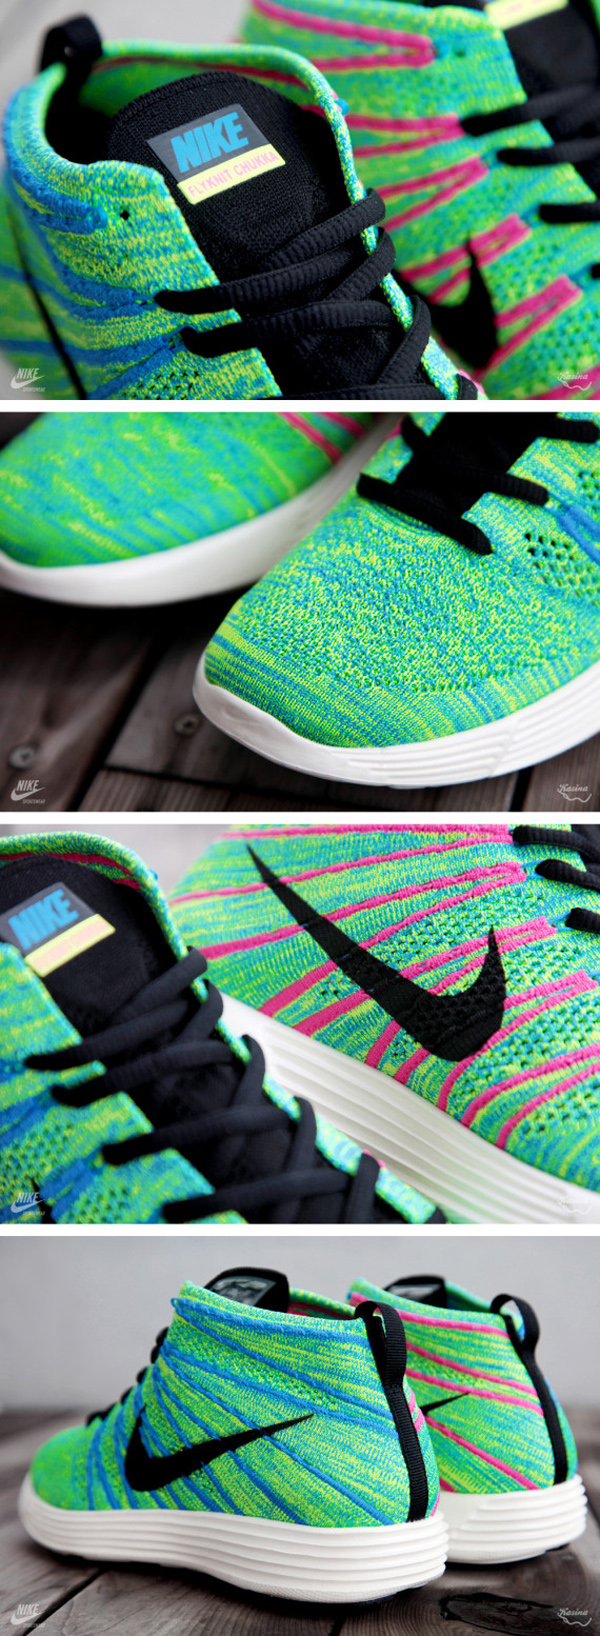 nike-flyknit-chukka-fall-2013-collection-04